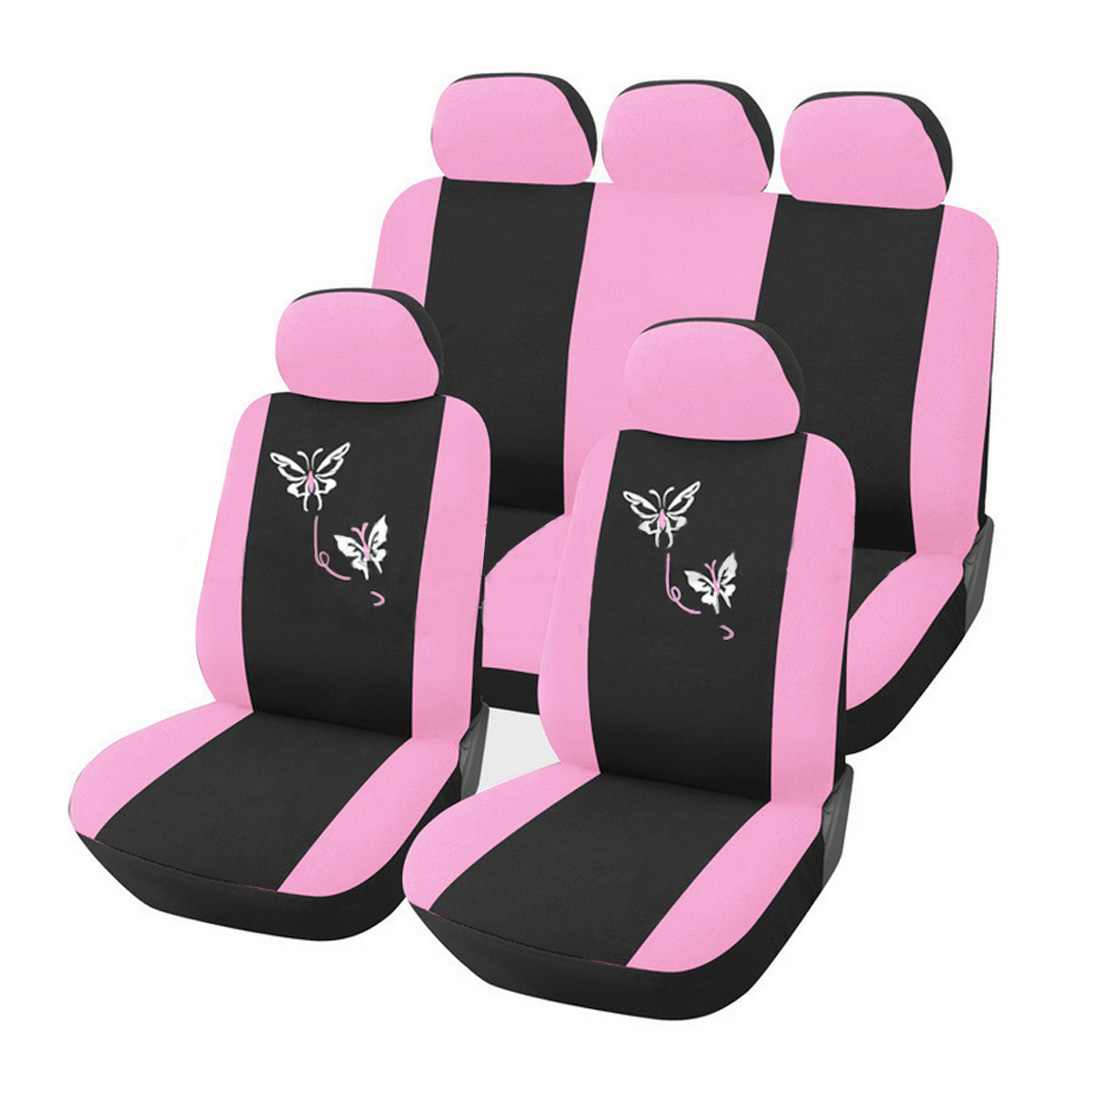 Dewtreetali Decoration Car Seat Covers For Women Universal Fit Most